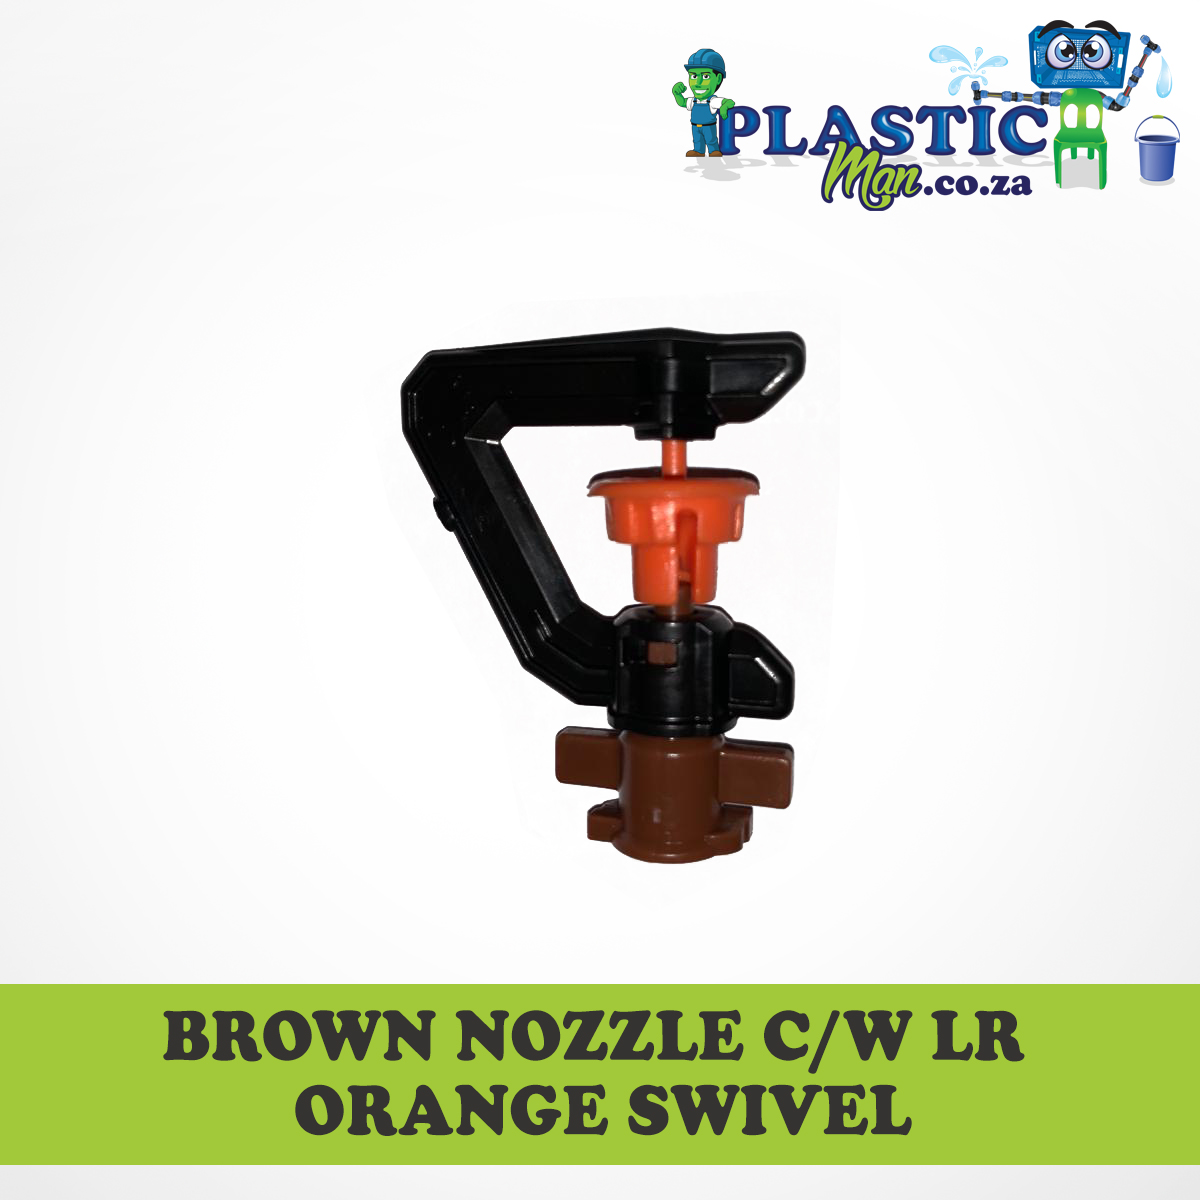 Brown Nozzel c/w lr Orange Swivel